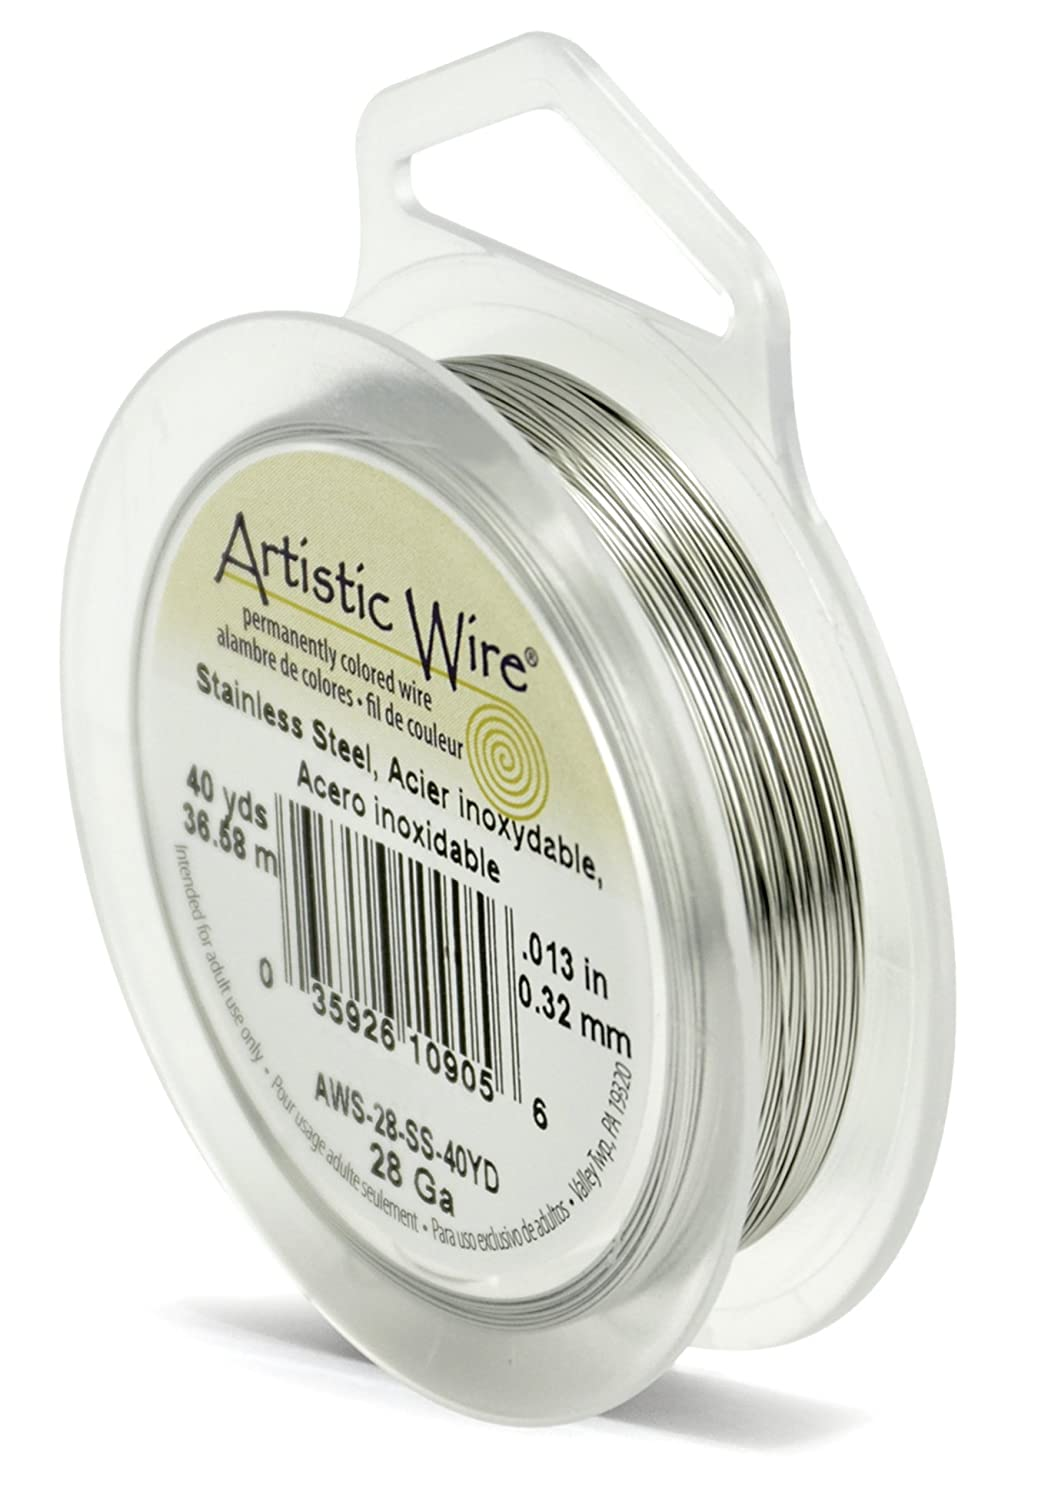 Artistic Wire 28 Gauge, Stainless Steel, 40 Yard : Artistic Wire 28 Gauge AWS-28-SS-40YD